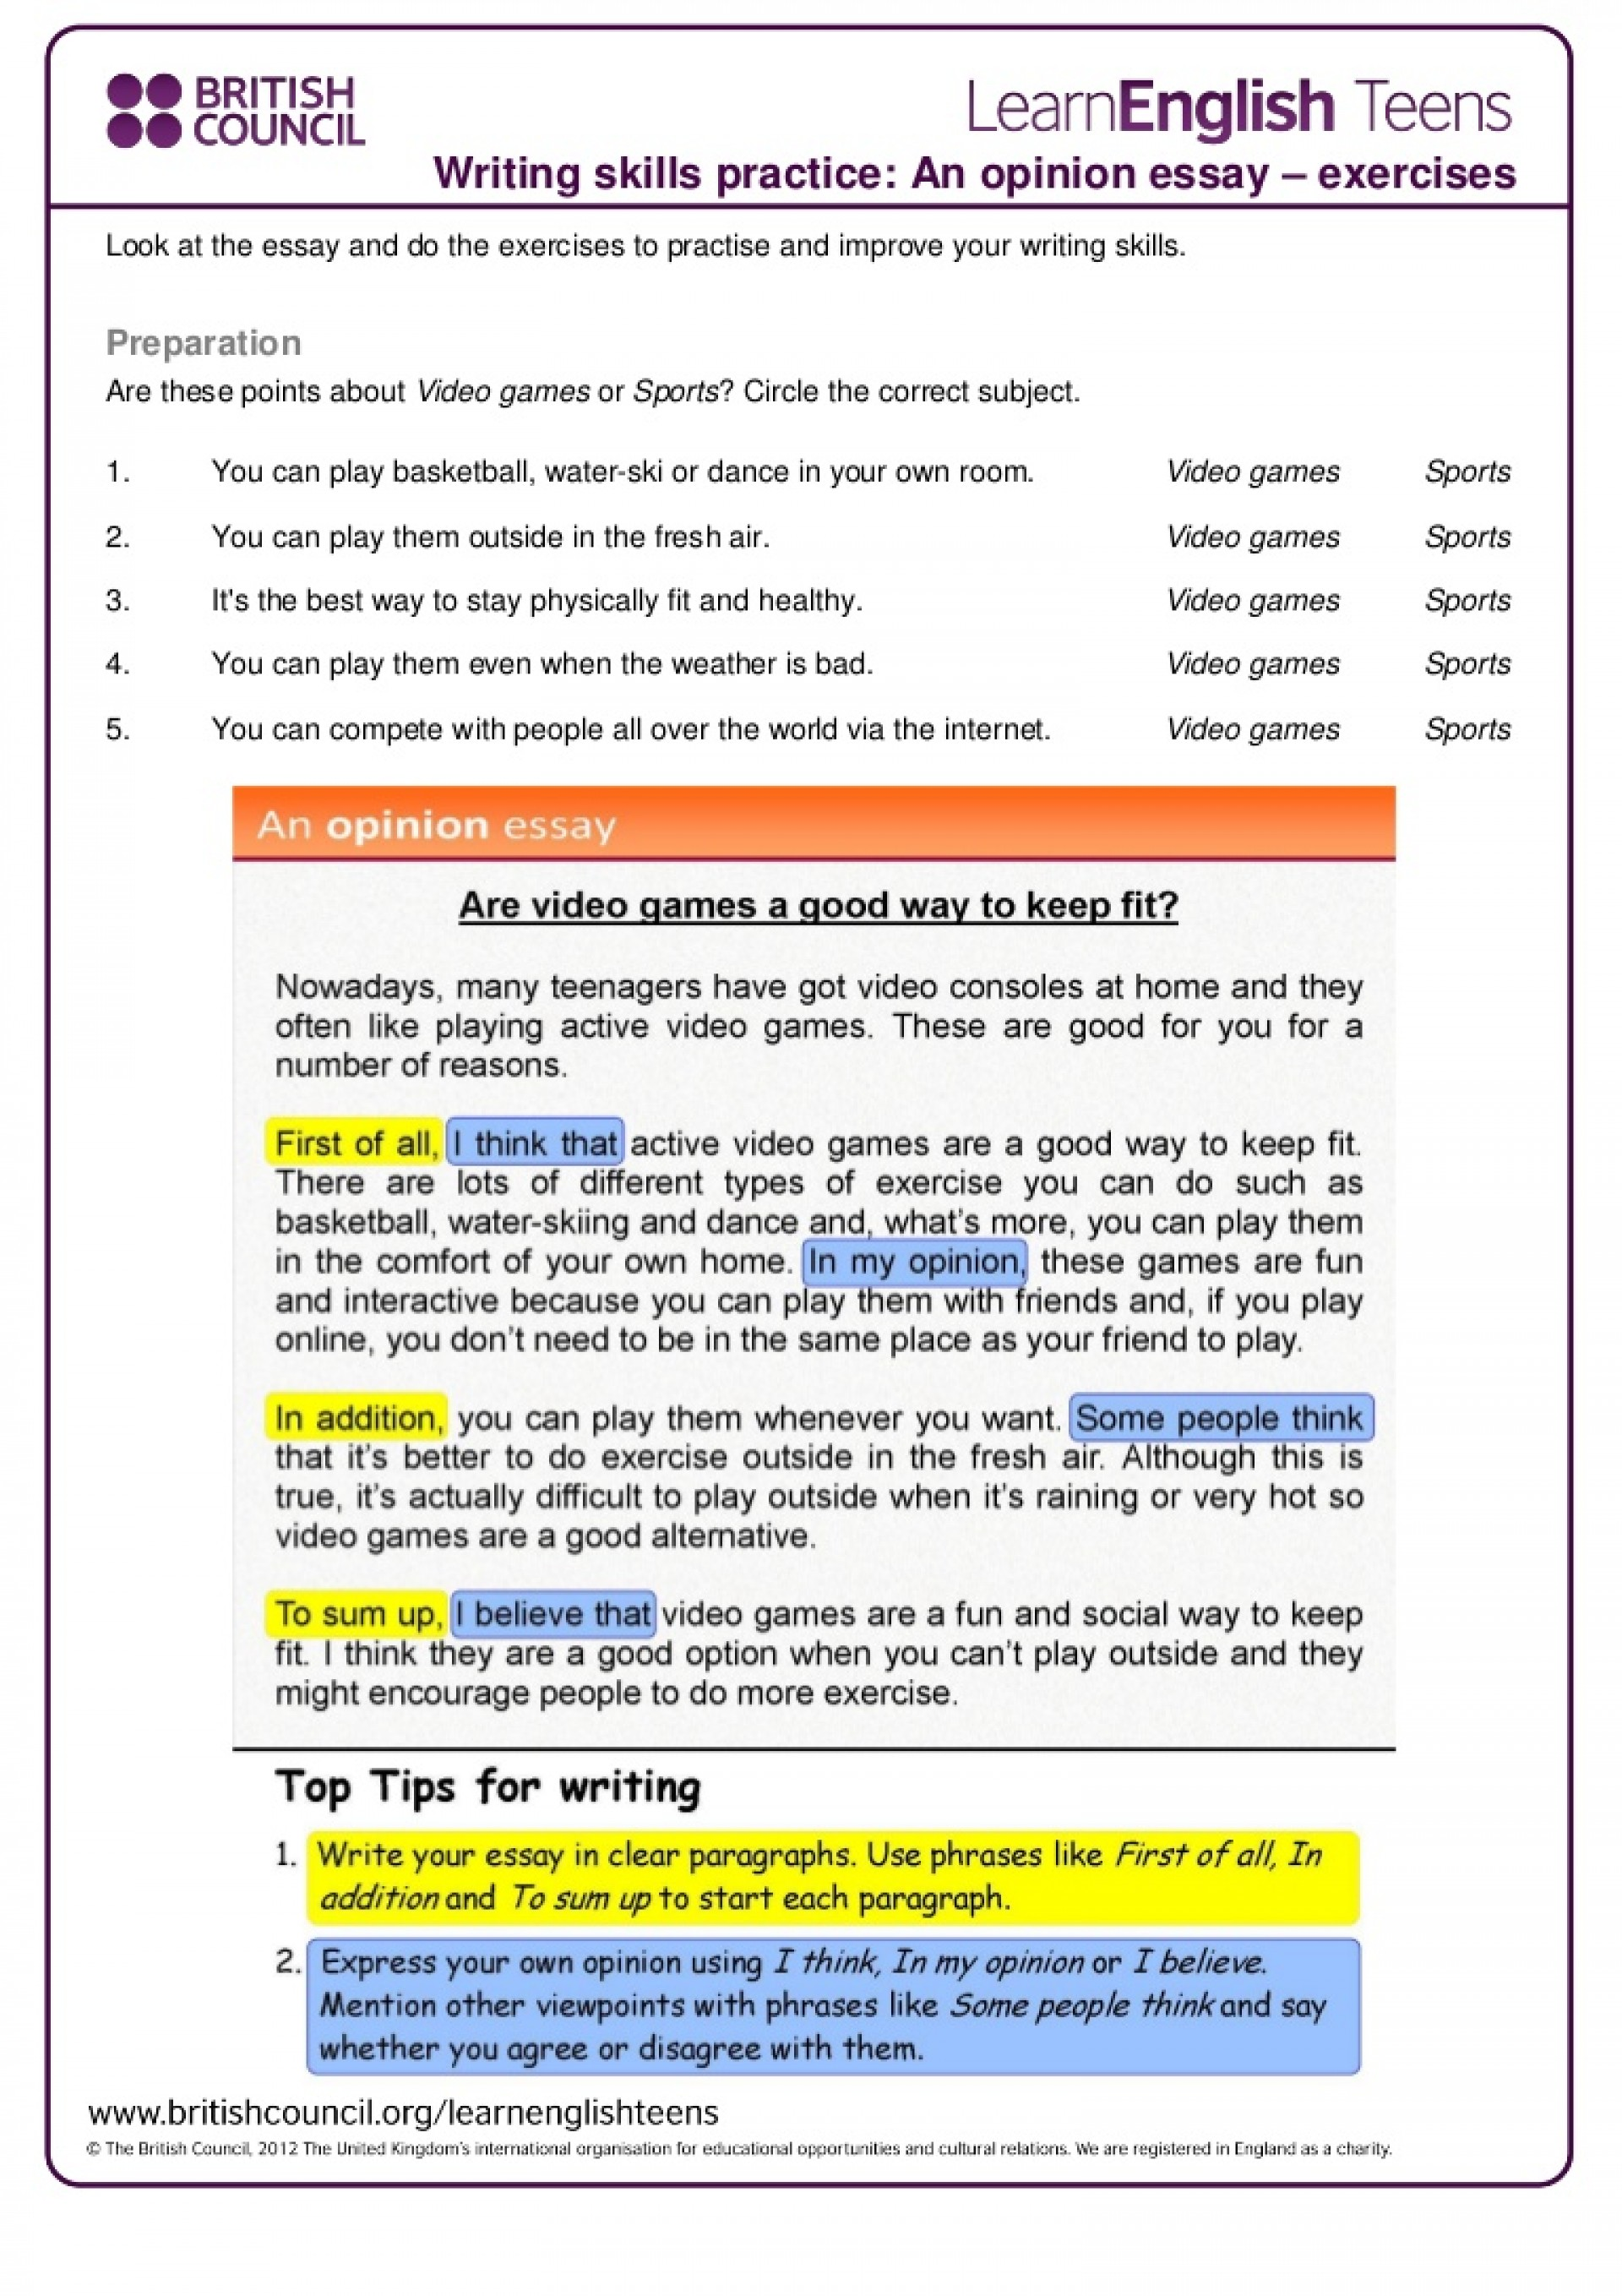 011 Writing Skills Essay Online Ielts Courses Podcast Jc Economics How To Write An Opinion 4th Grade Anopinionessay Exercises Thumbn Magnificent Prompts 6th Examples 3rd 1920